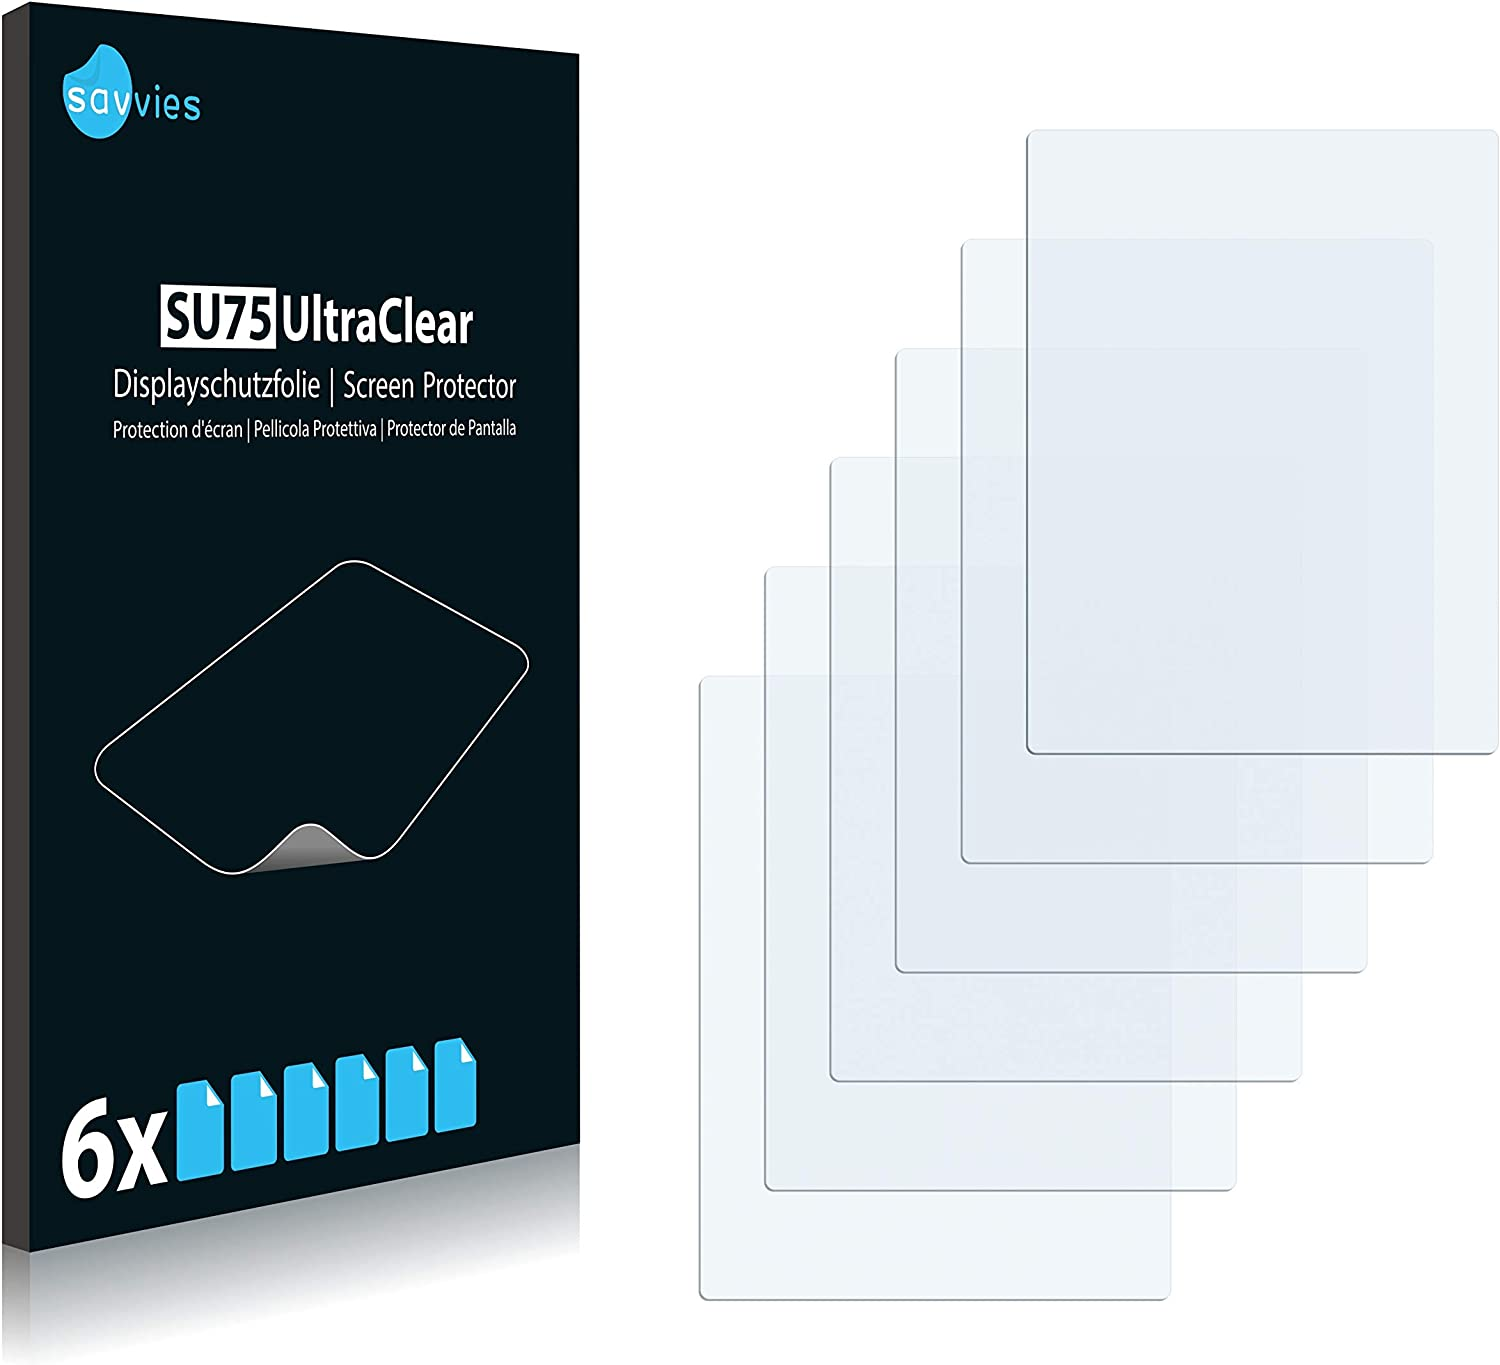 ultra clear, very simple assembly 6x Savvies SU75 UltraClear Screen Protector for FujiFilm Instax Mini LiPlay